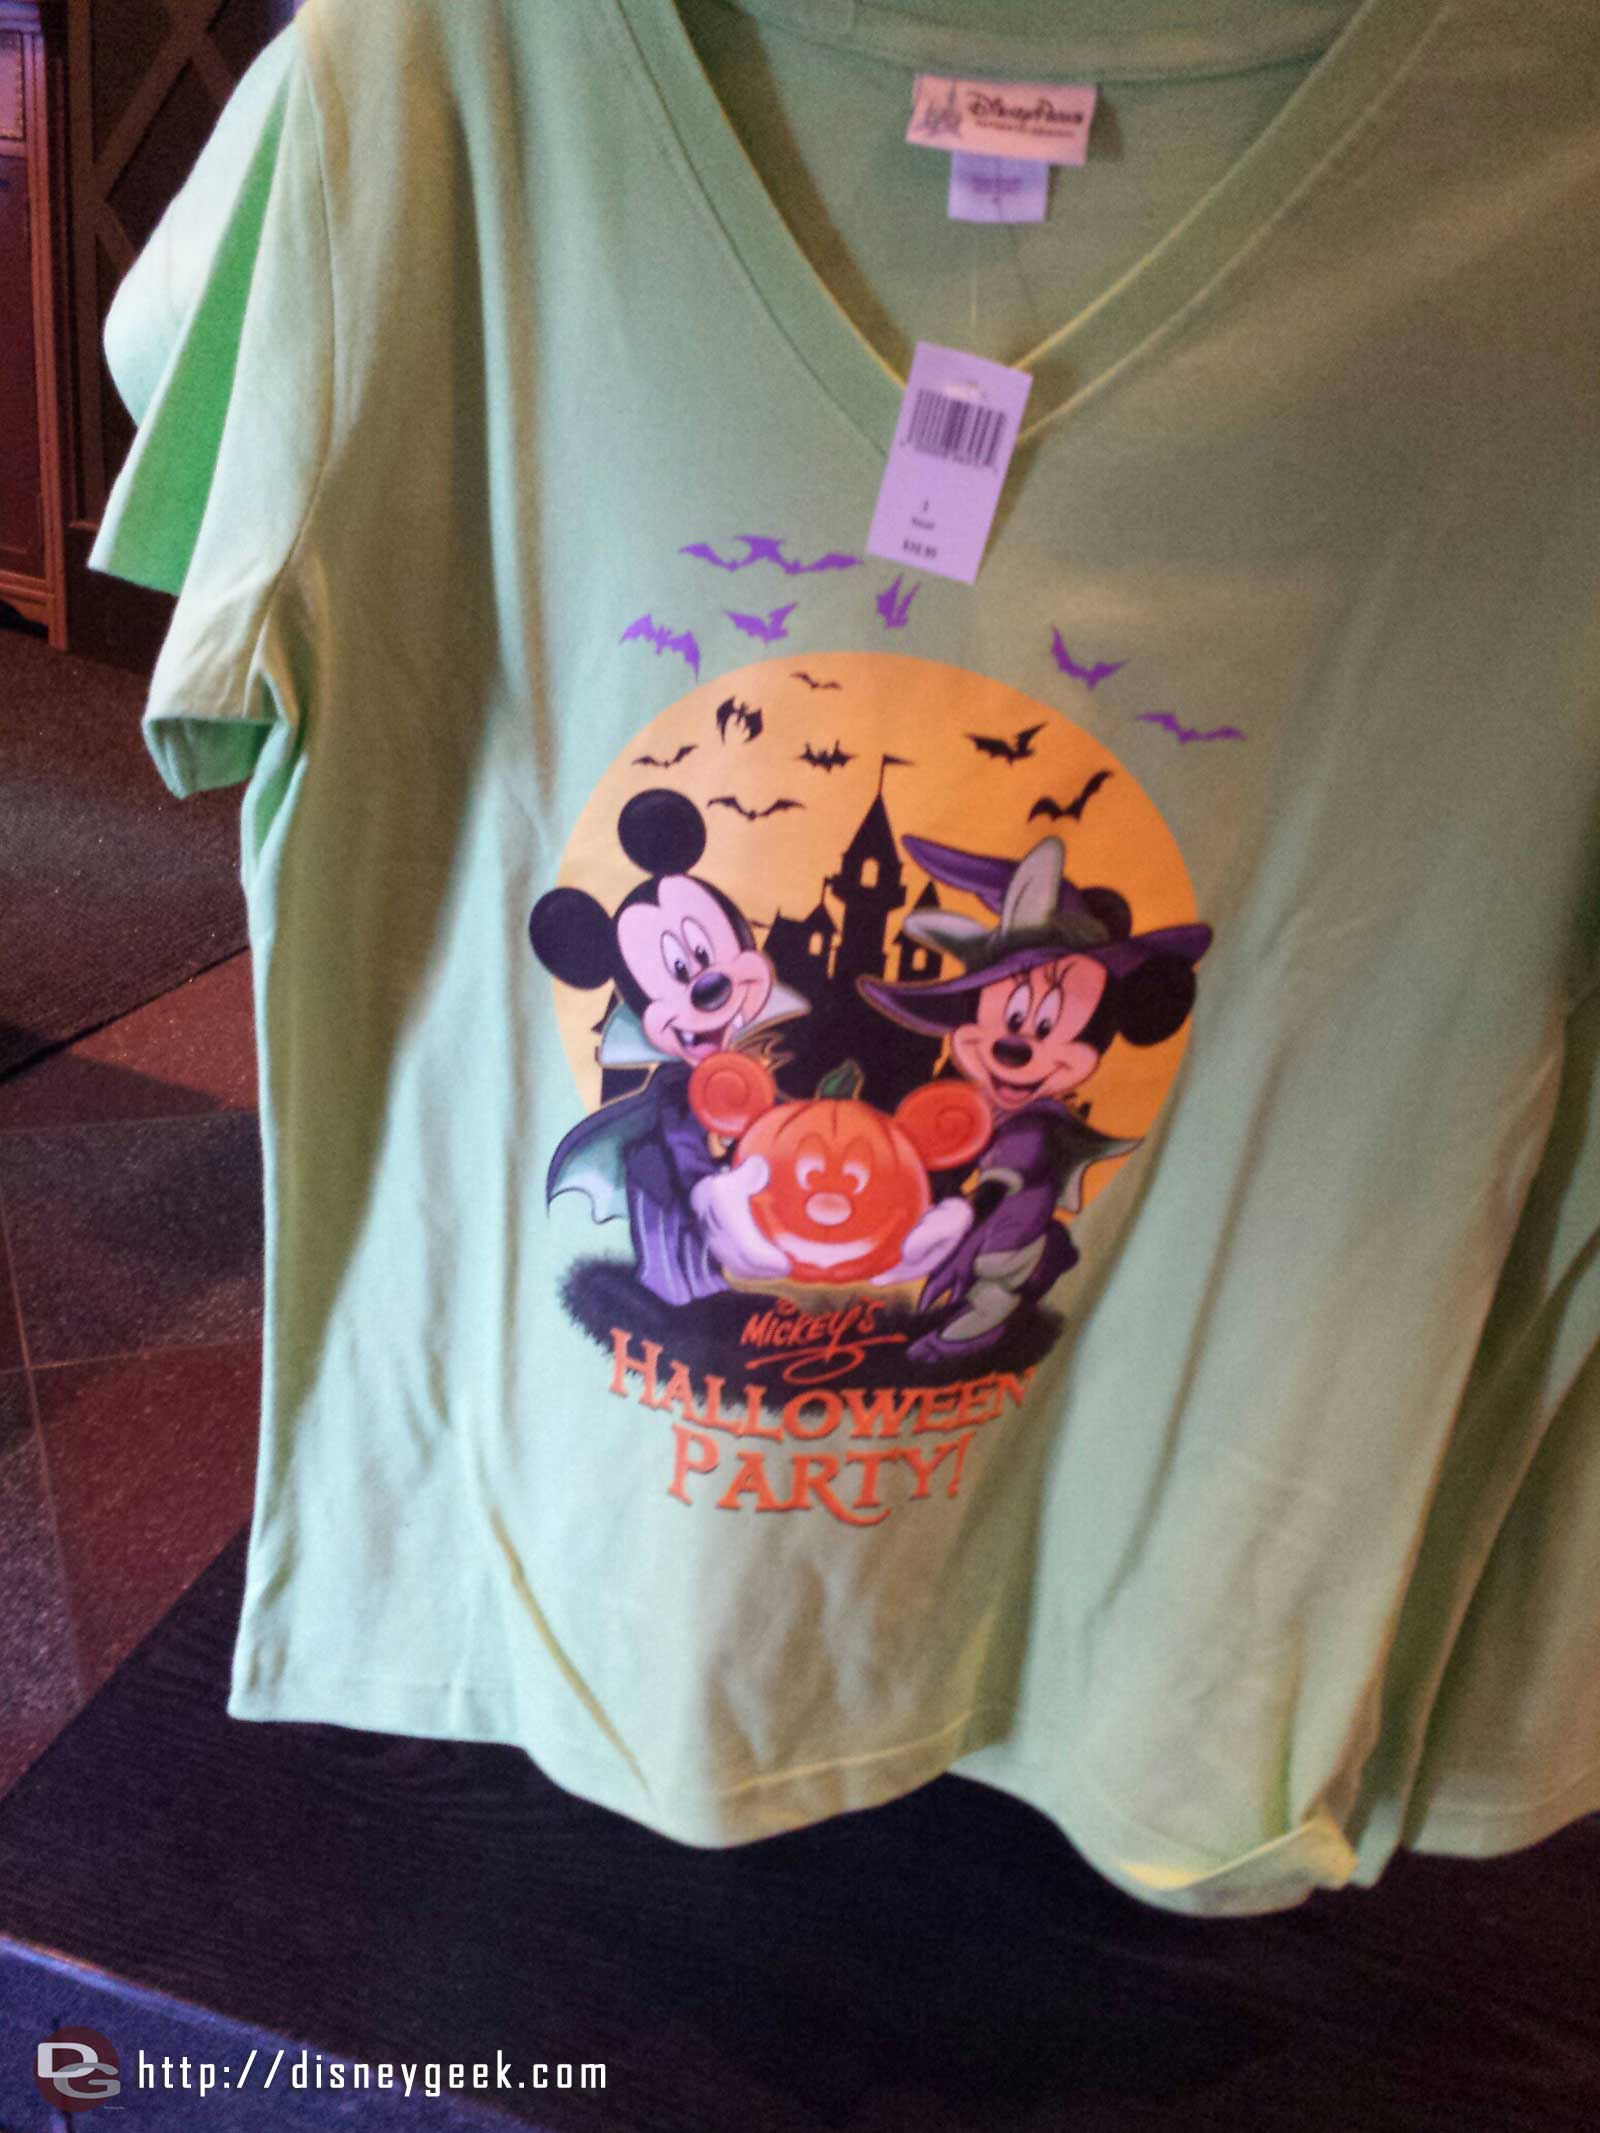 Mickey's Halloween Party shirt